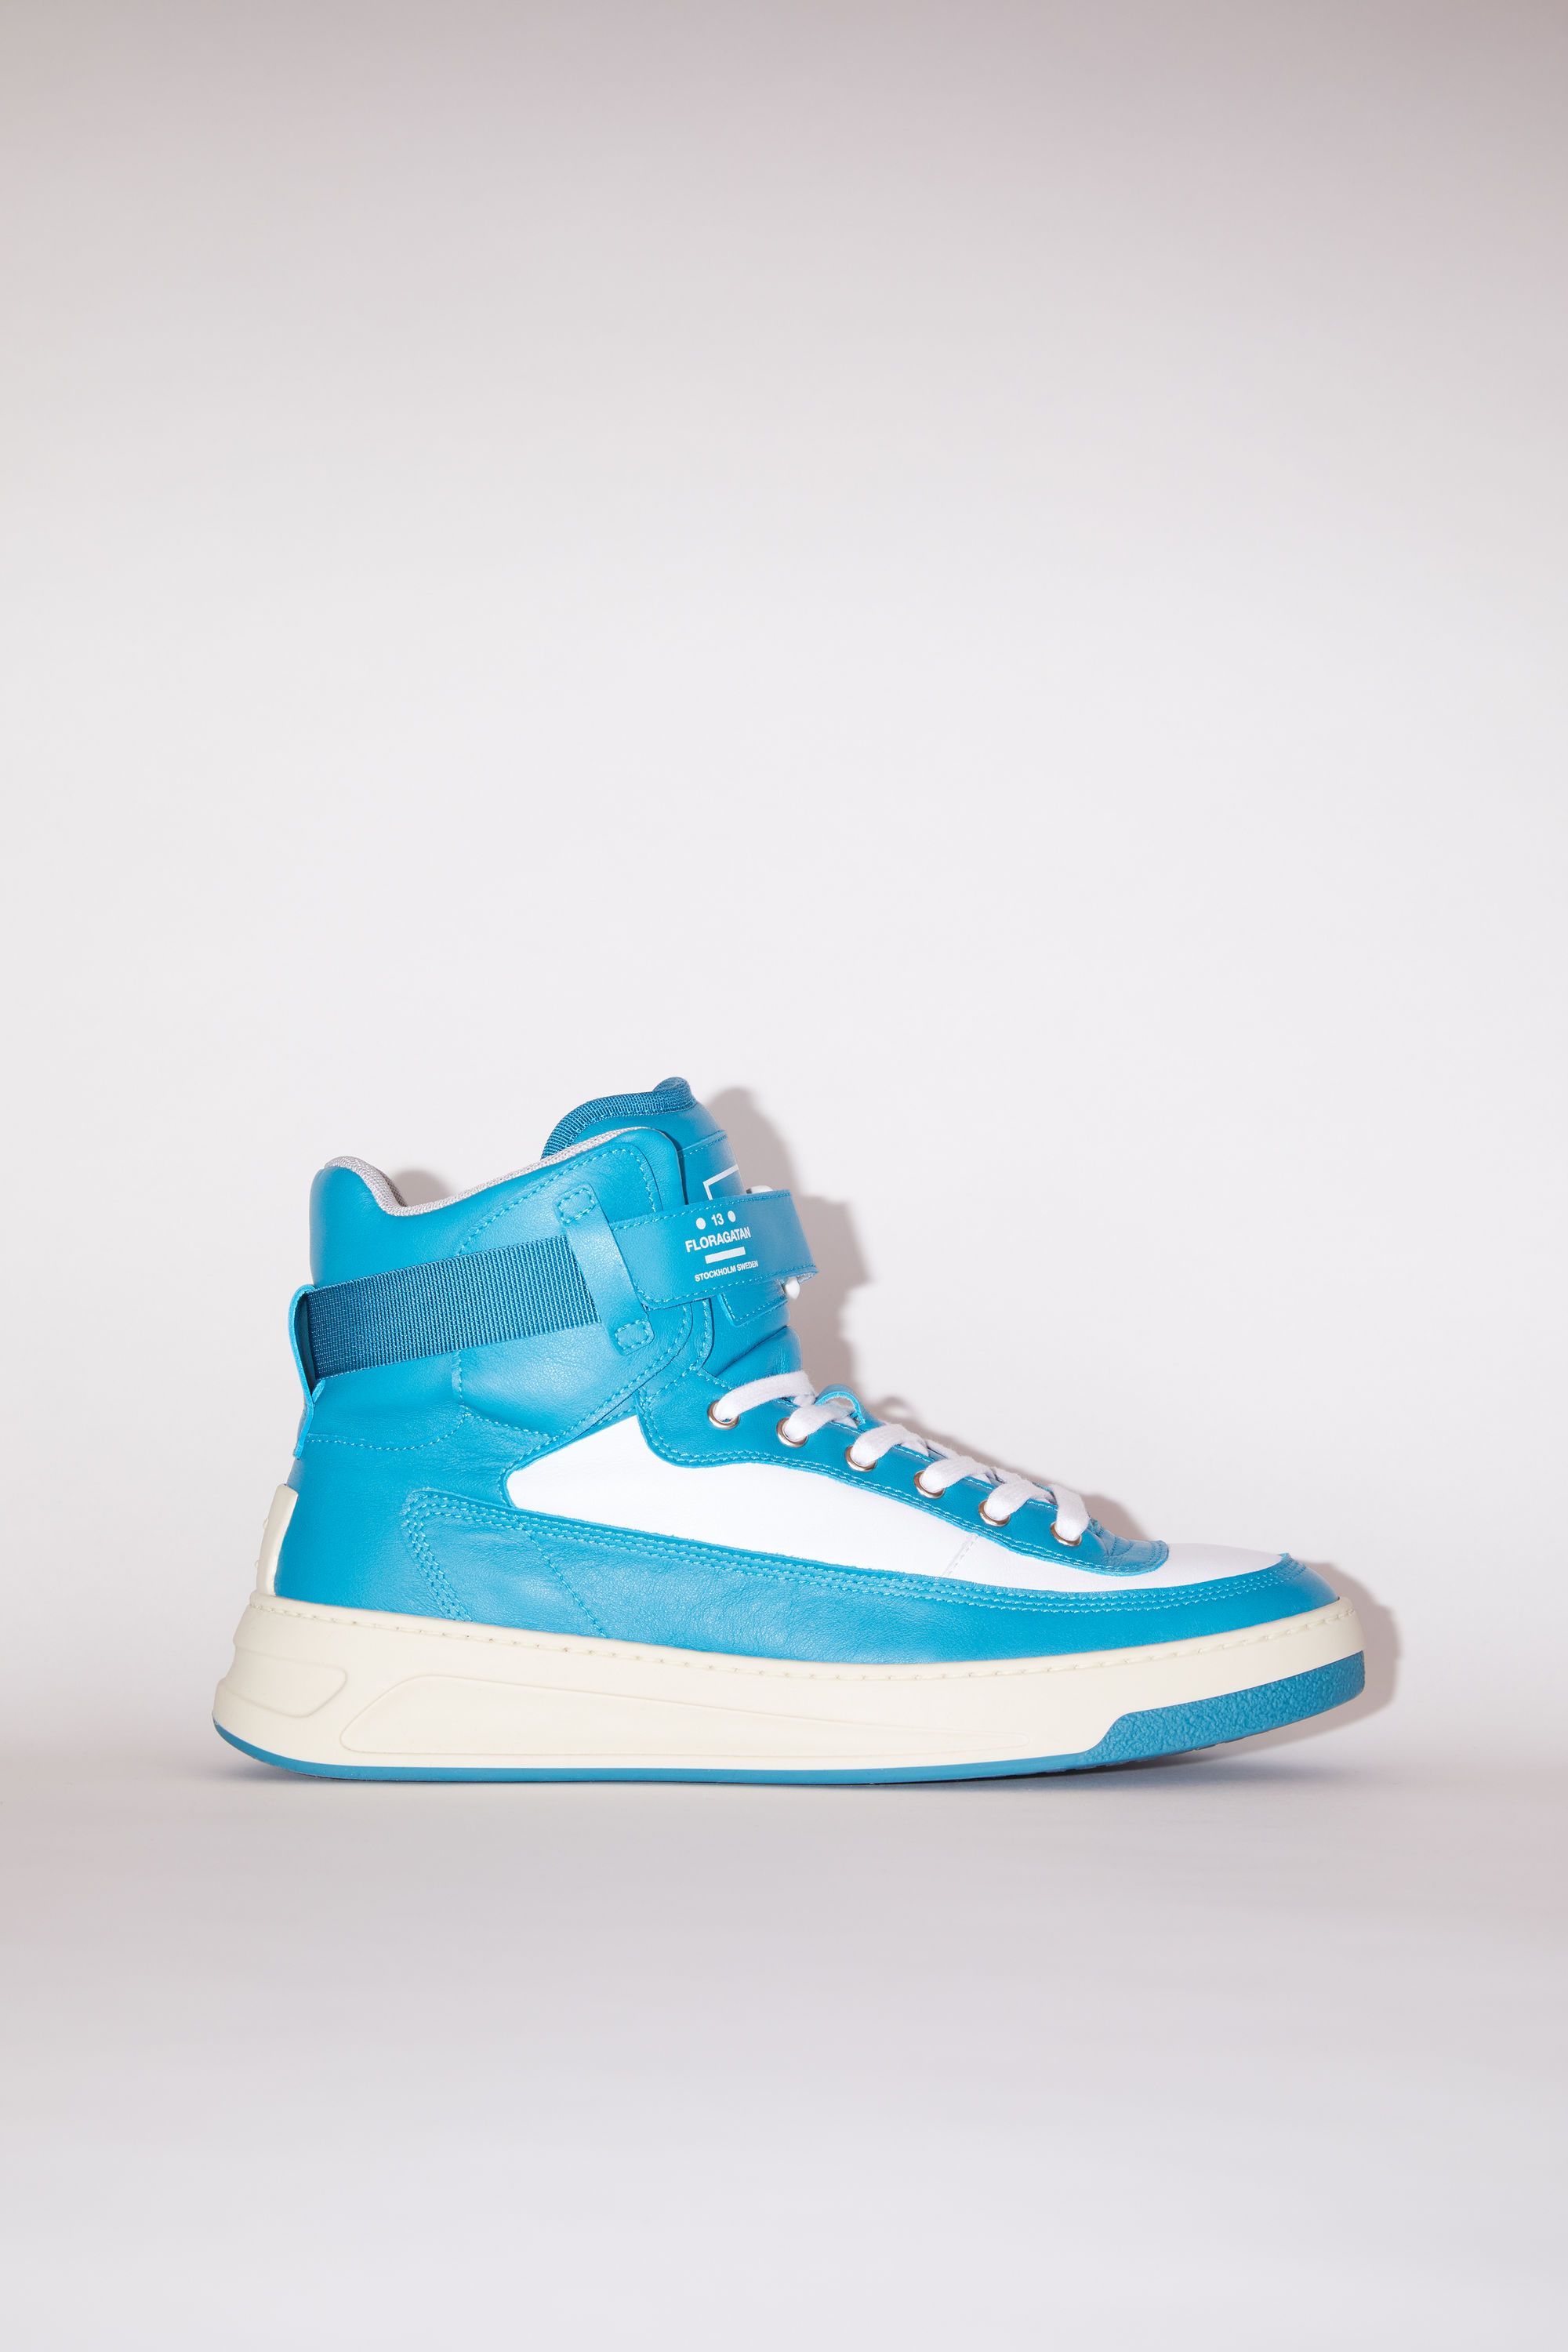 Acne Studios turquoise/white/white lace-up high top sneakers are made of calf leather with a face motif on the back sole. 001